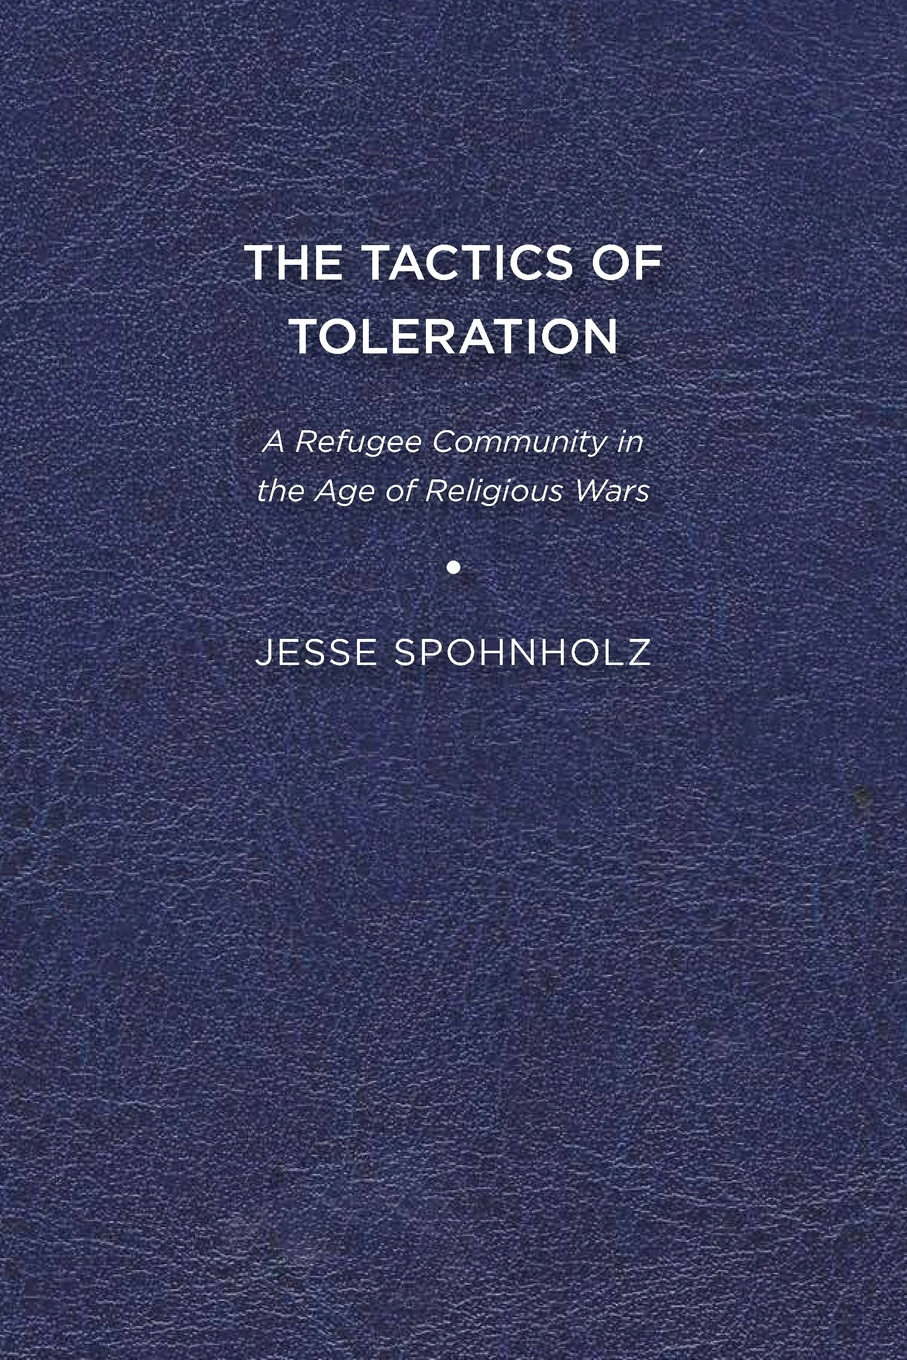 Jesse Spohnholz The Tactics of Toleration. A Refugee Community in the Age of Religious Wars the crisis of religious toleration in imperial russia